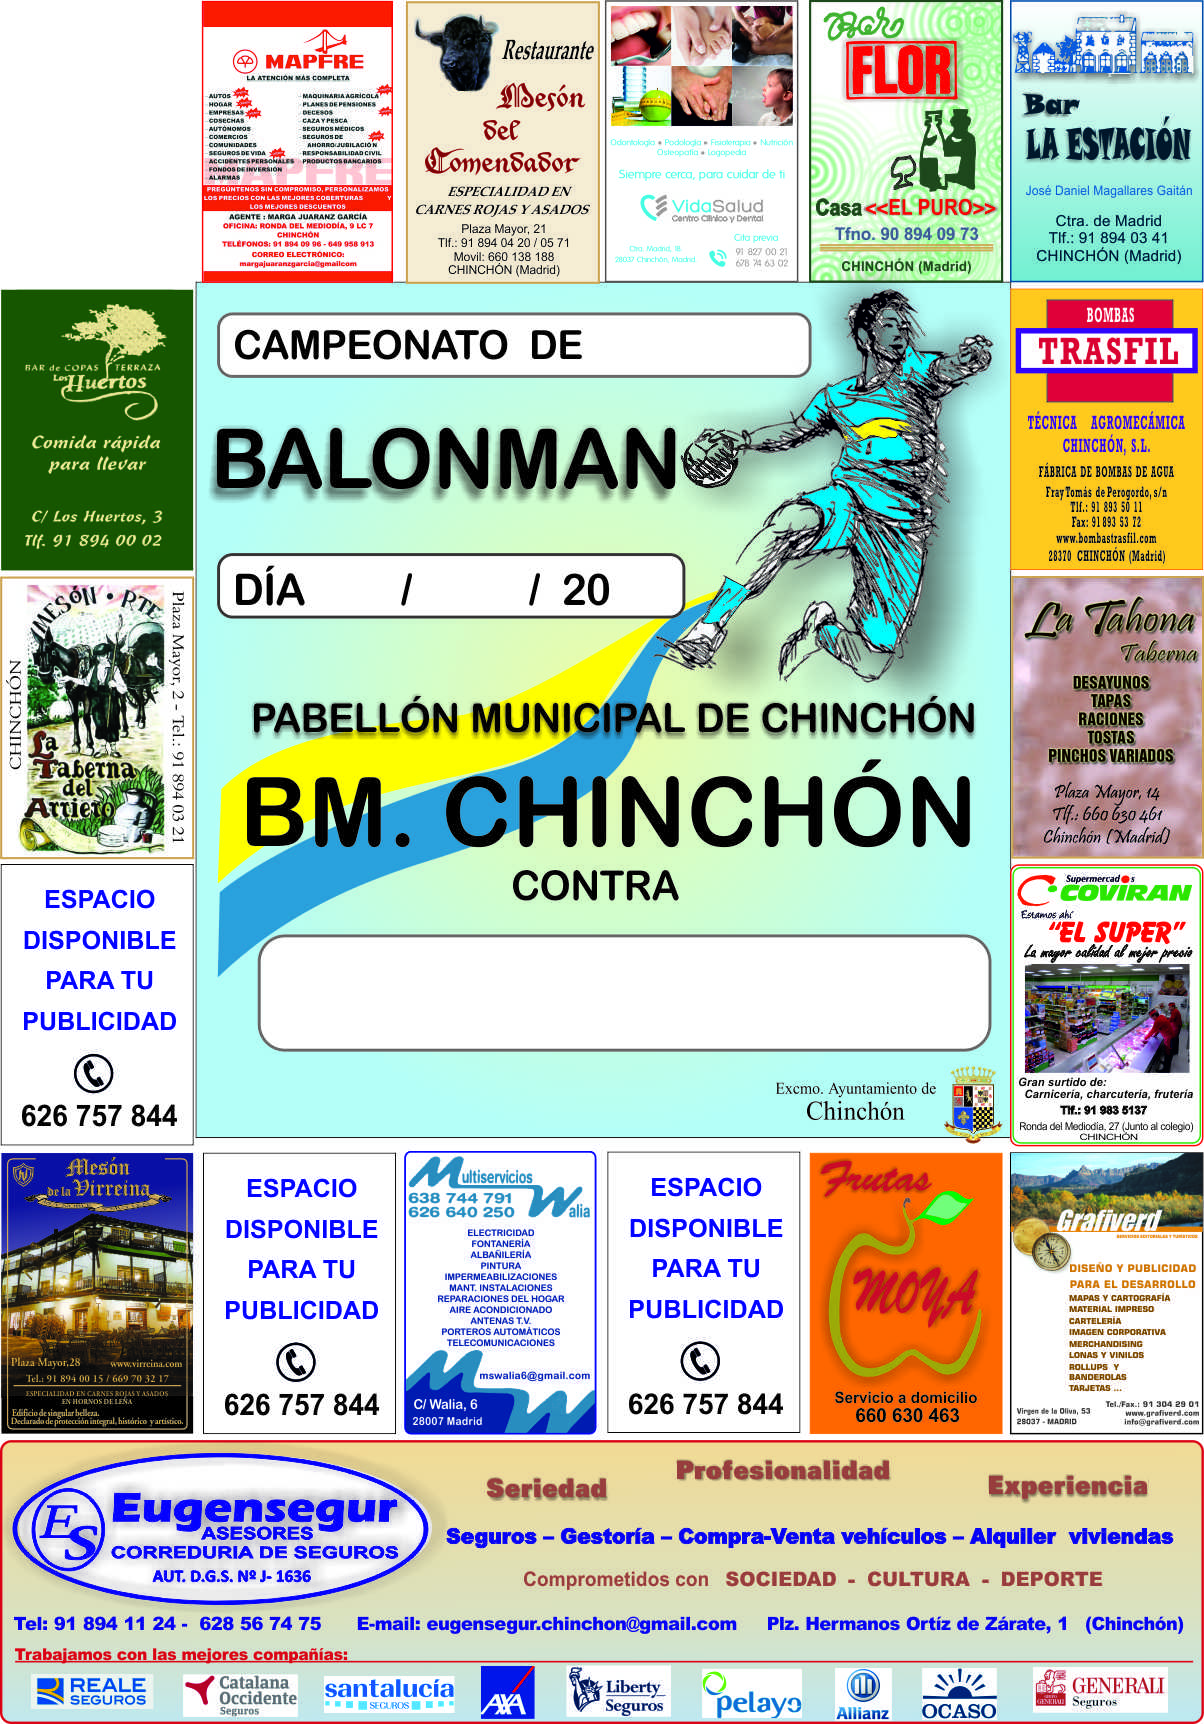 Balonmano Chinchón (Madrid)